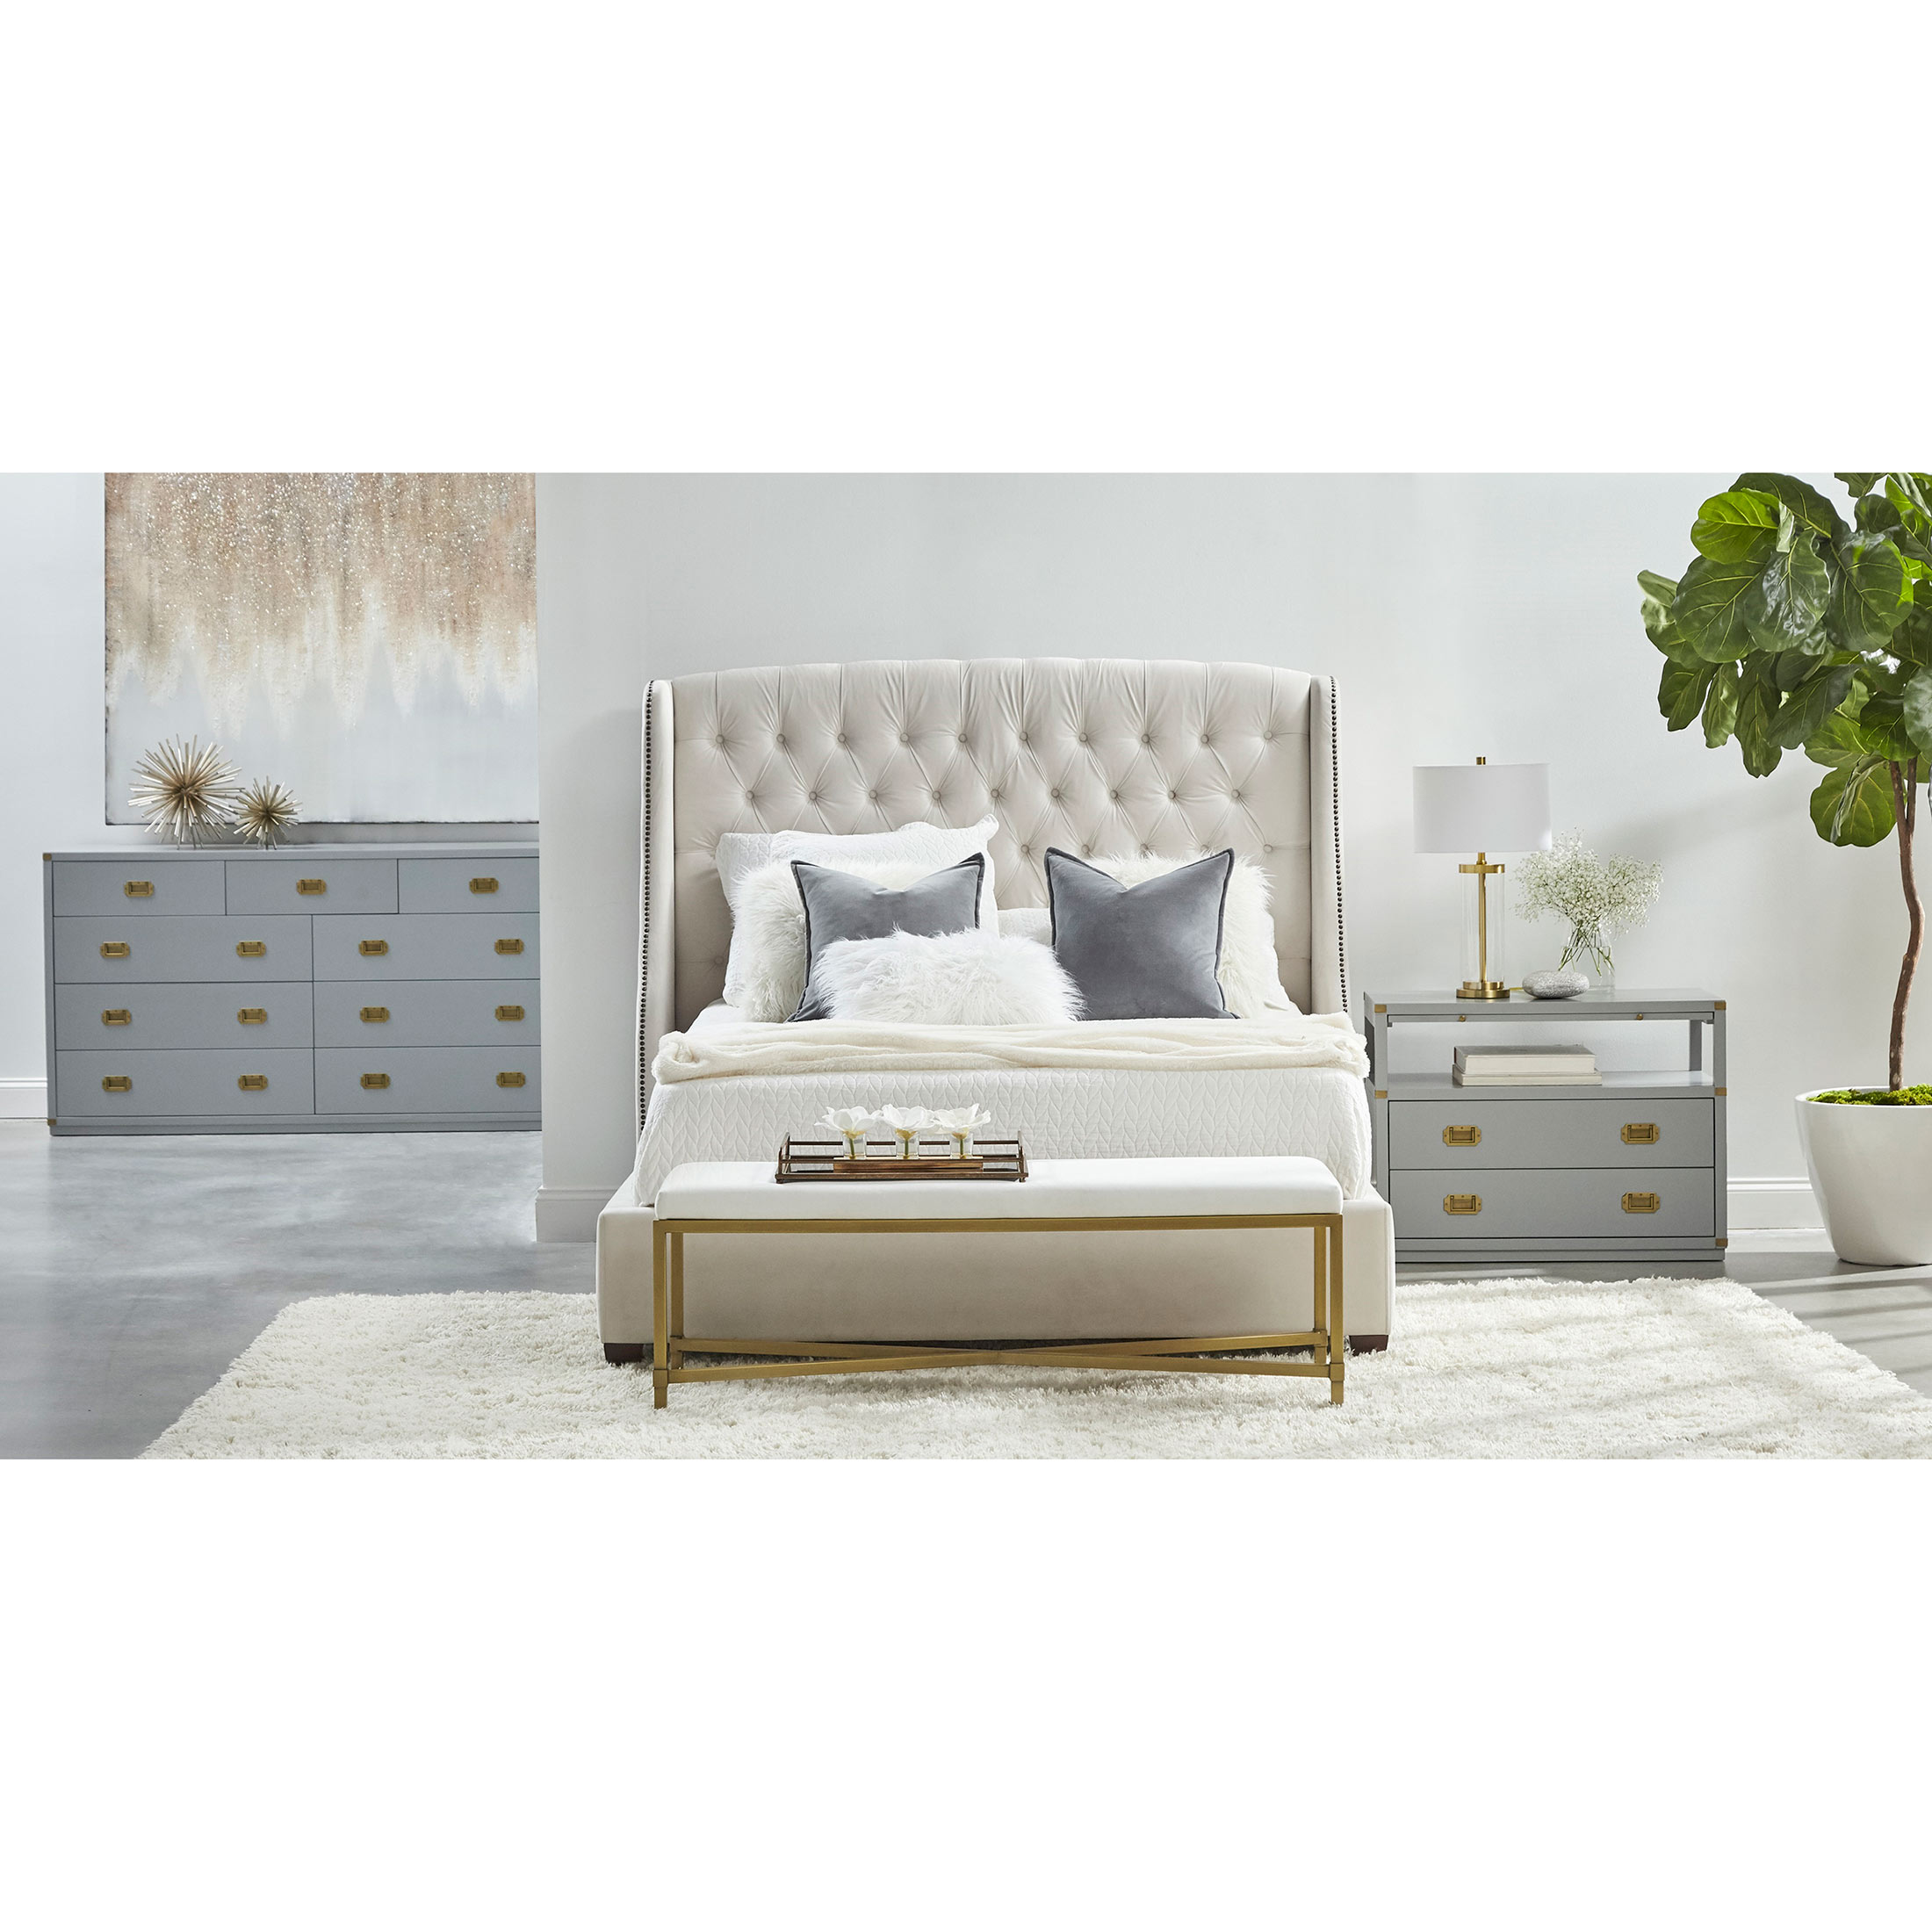 Bobby Modern Classic 2-Drawer Brushed Gold Pulls Dove Grey Nightstand